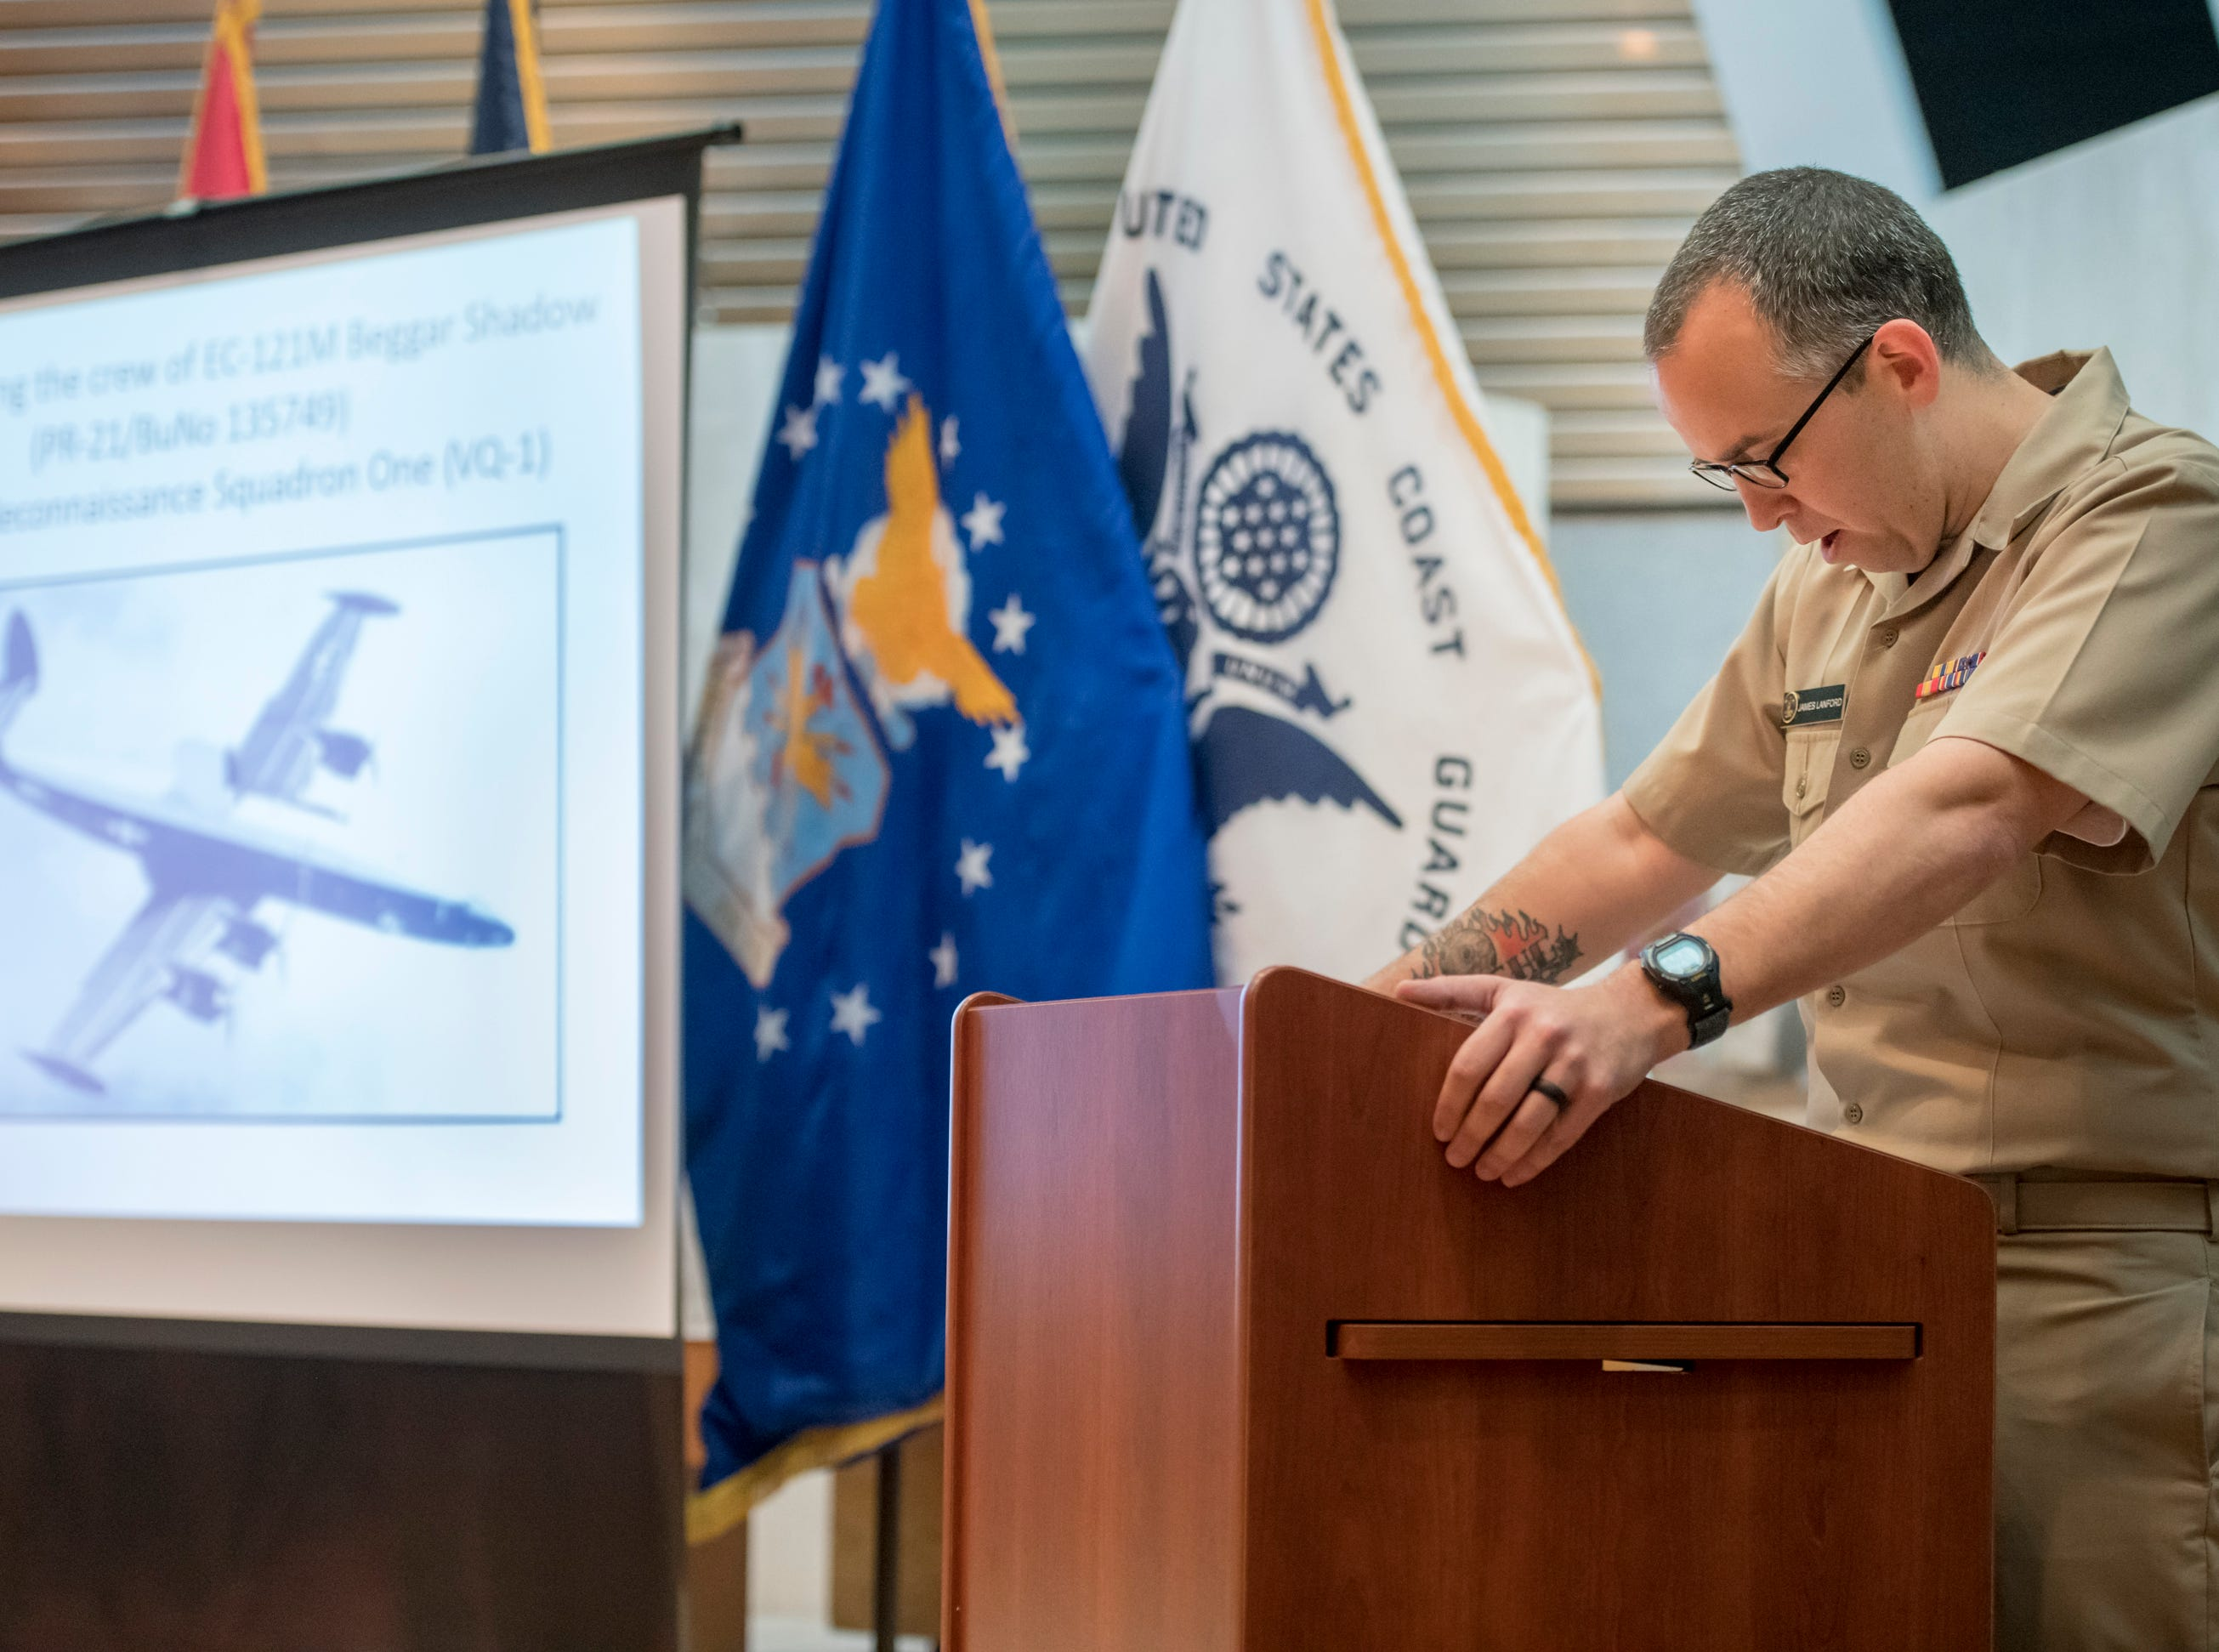 """Chaplain James Lanford gives the invocation during a memorial service for the fallen crew of the EC-121M """"Beggar Shadow"""" reconnaissance plane at Corry Station in Pensacola on Monday, April 15, 2019.  The Navy EC-121M reconnaissance aircraft (PR-21/BuNo 135749) of Fleet Air Reconnaissance Squadron One (VQ-1) was shot down over the Sea of Japan by North Korea on Monday, April 14,1969.  All 31 crewmembers were killed, including nine NAVSECGRU cryptologists."""